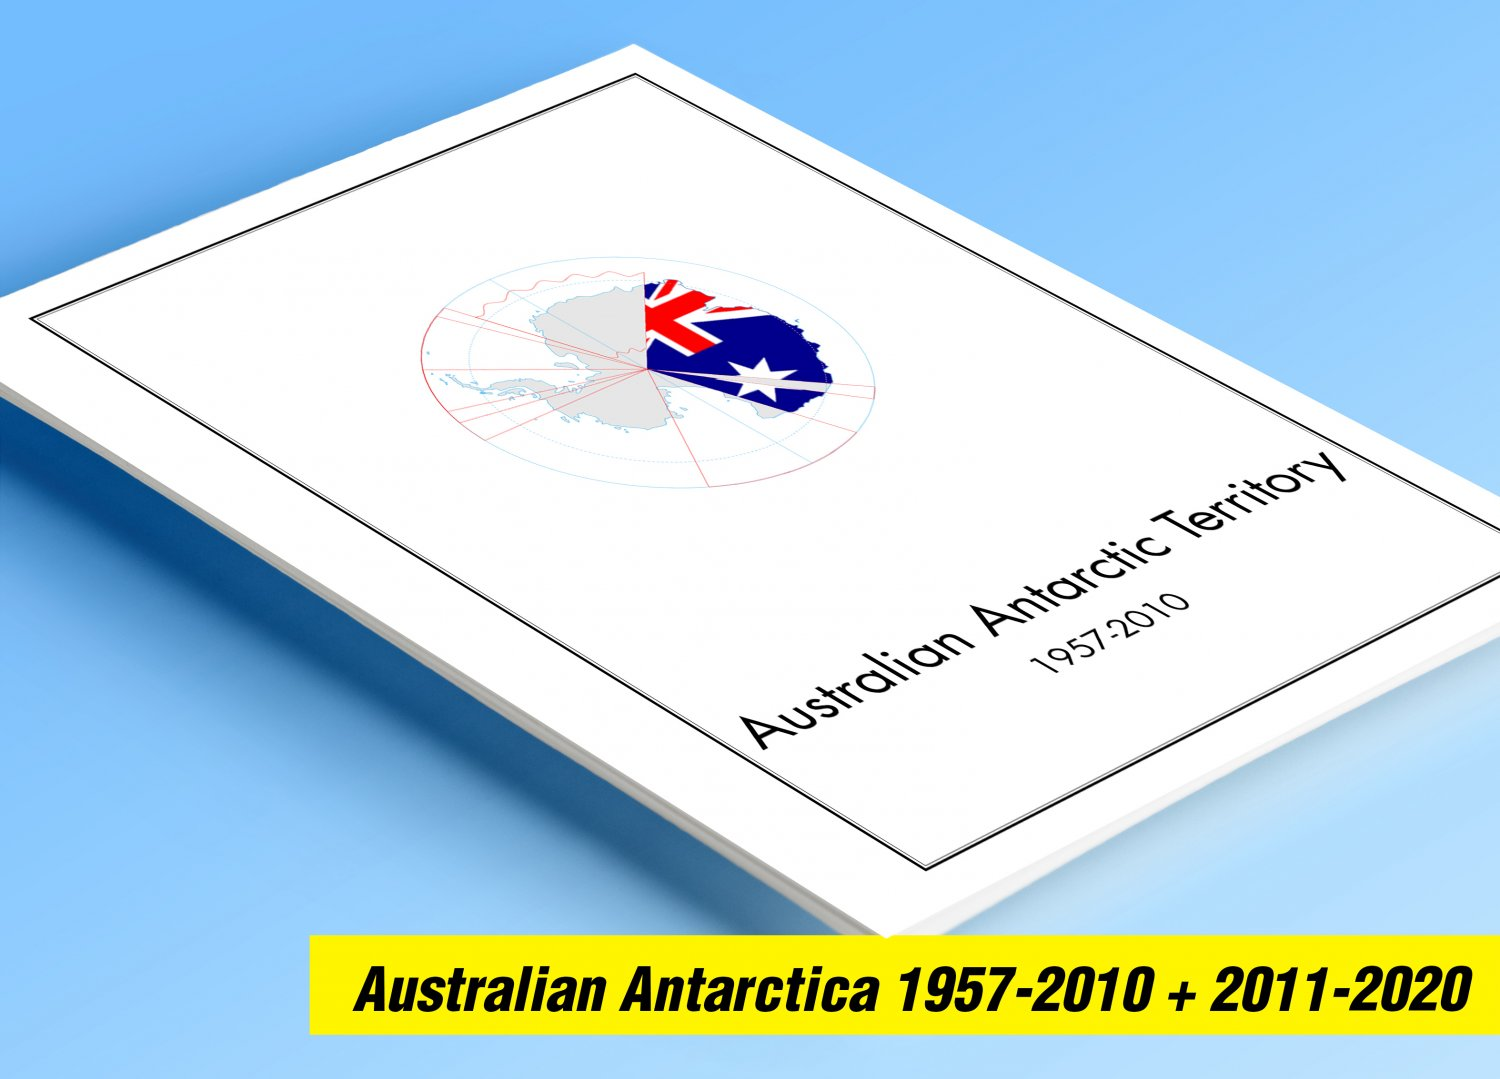 AUSTRALIAN ANTARCTIC TERRITORY 1957-2020 COLOR PRINTED STAMP ALBUM PAGES  (44 illustrated pages)